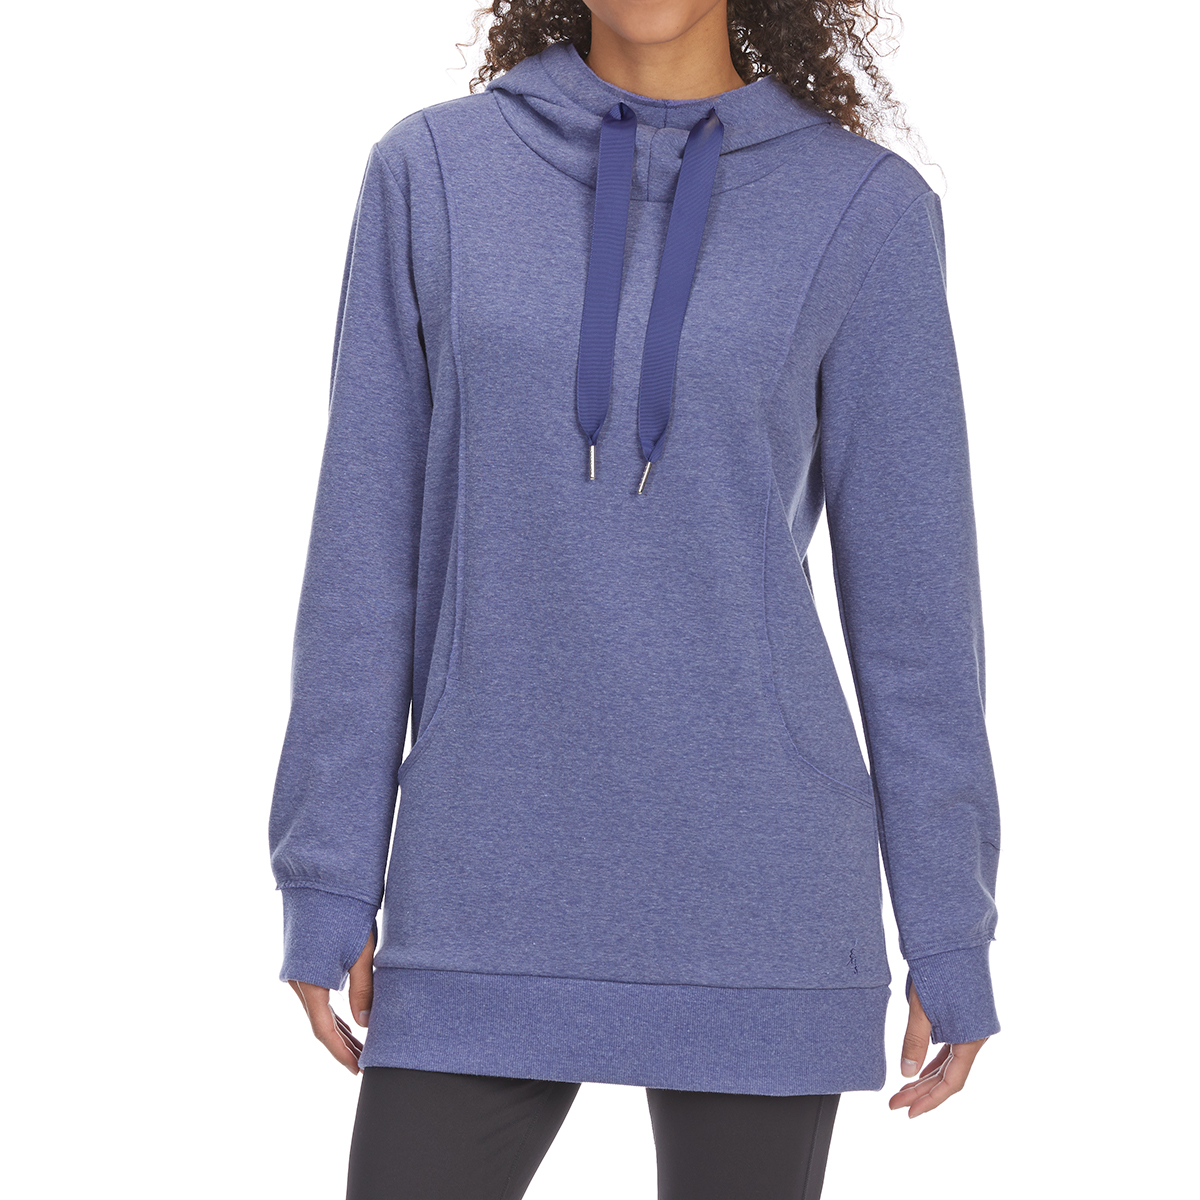 Ems Women's Canyon Pullover Hoodie - Blue, S